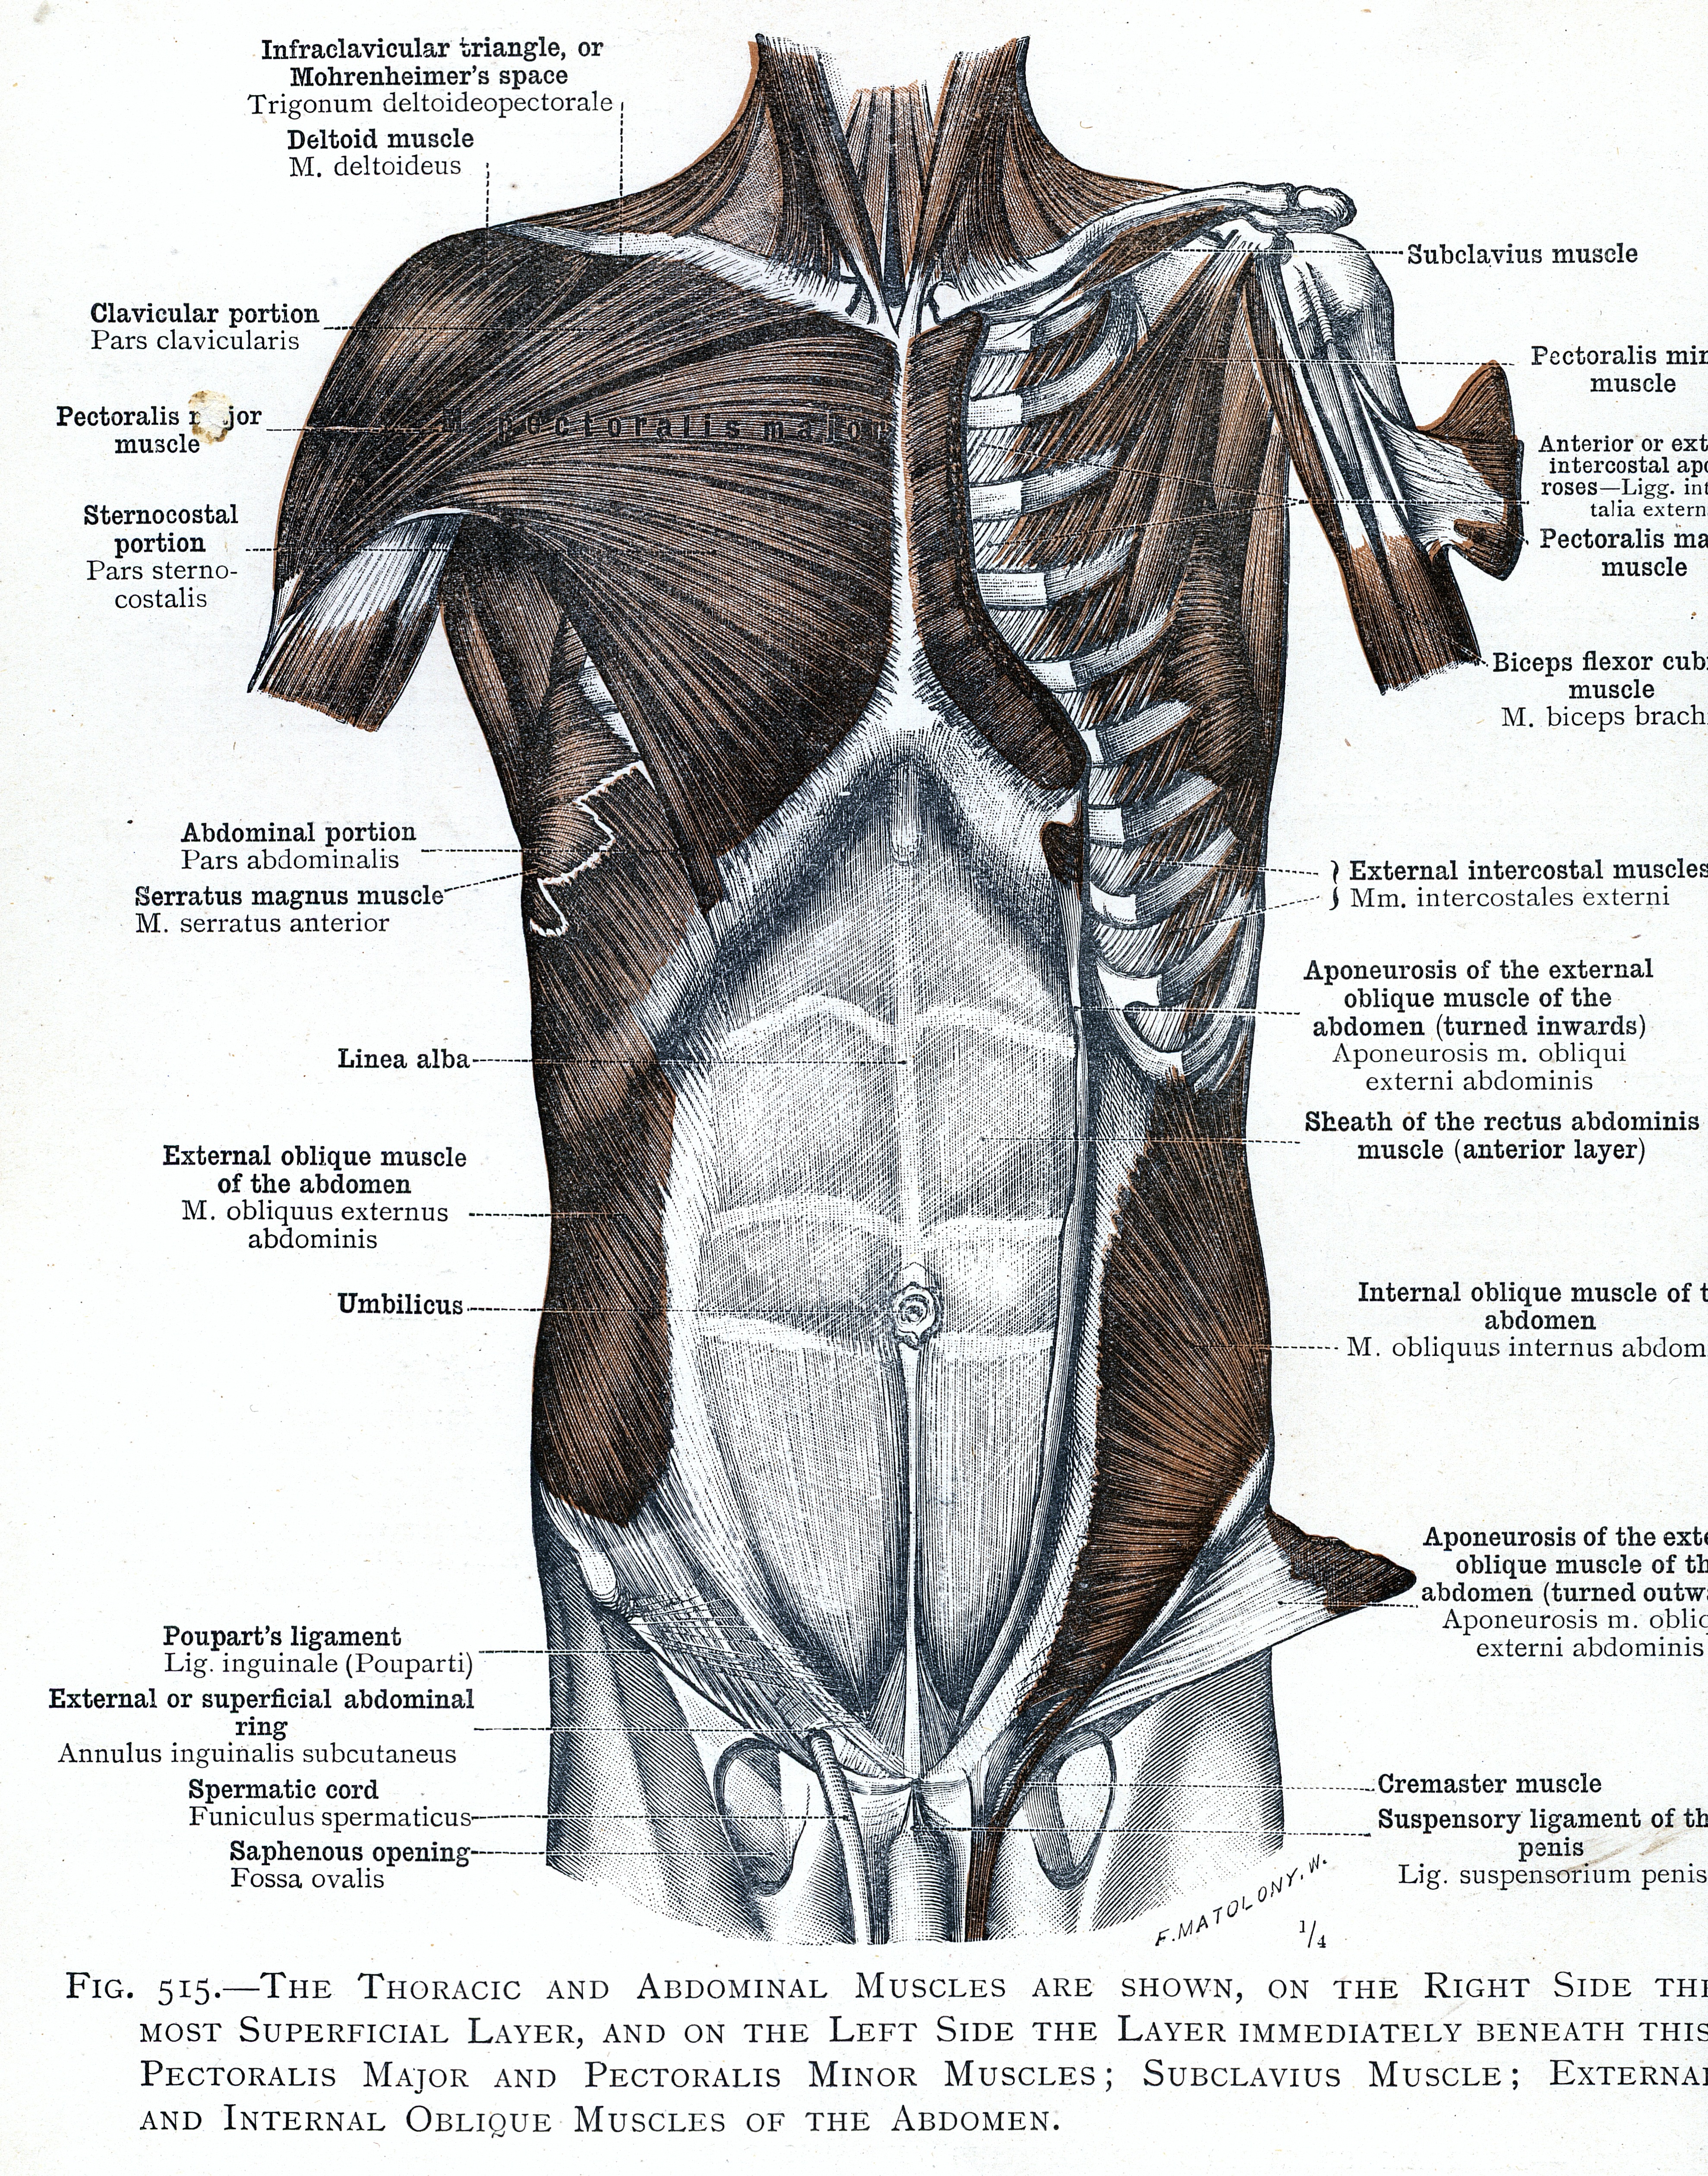 515 Pectoralis Major And Pectoralis Minor Muscles Subclavius